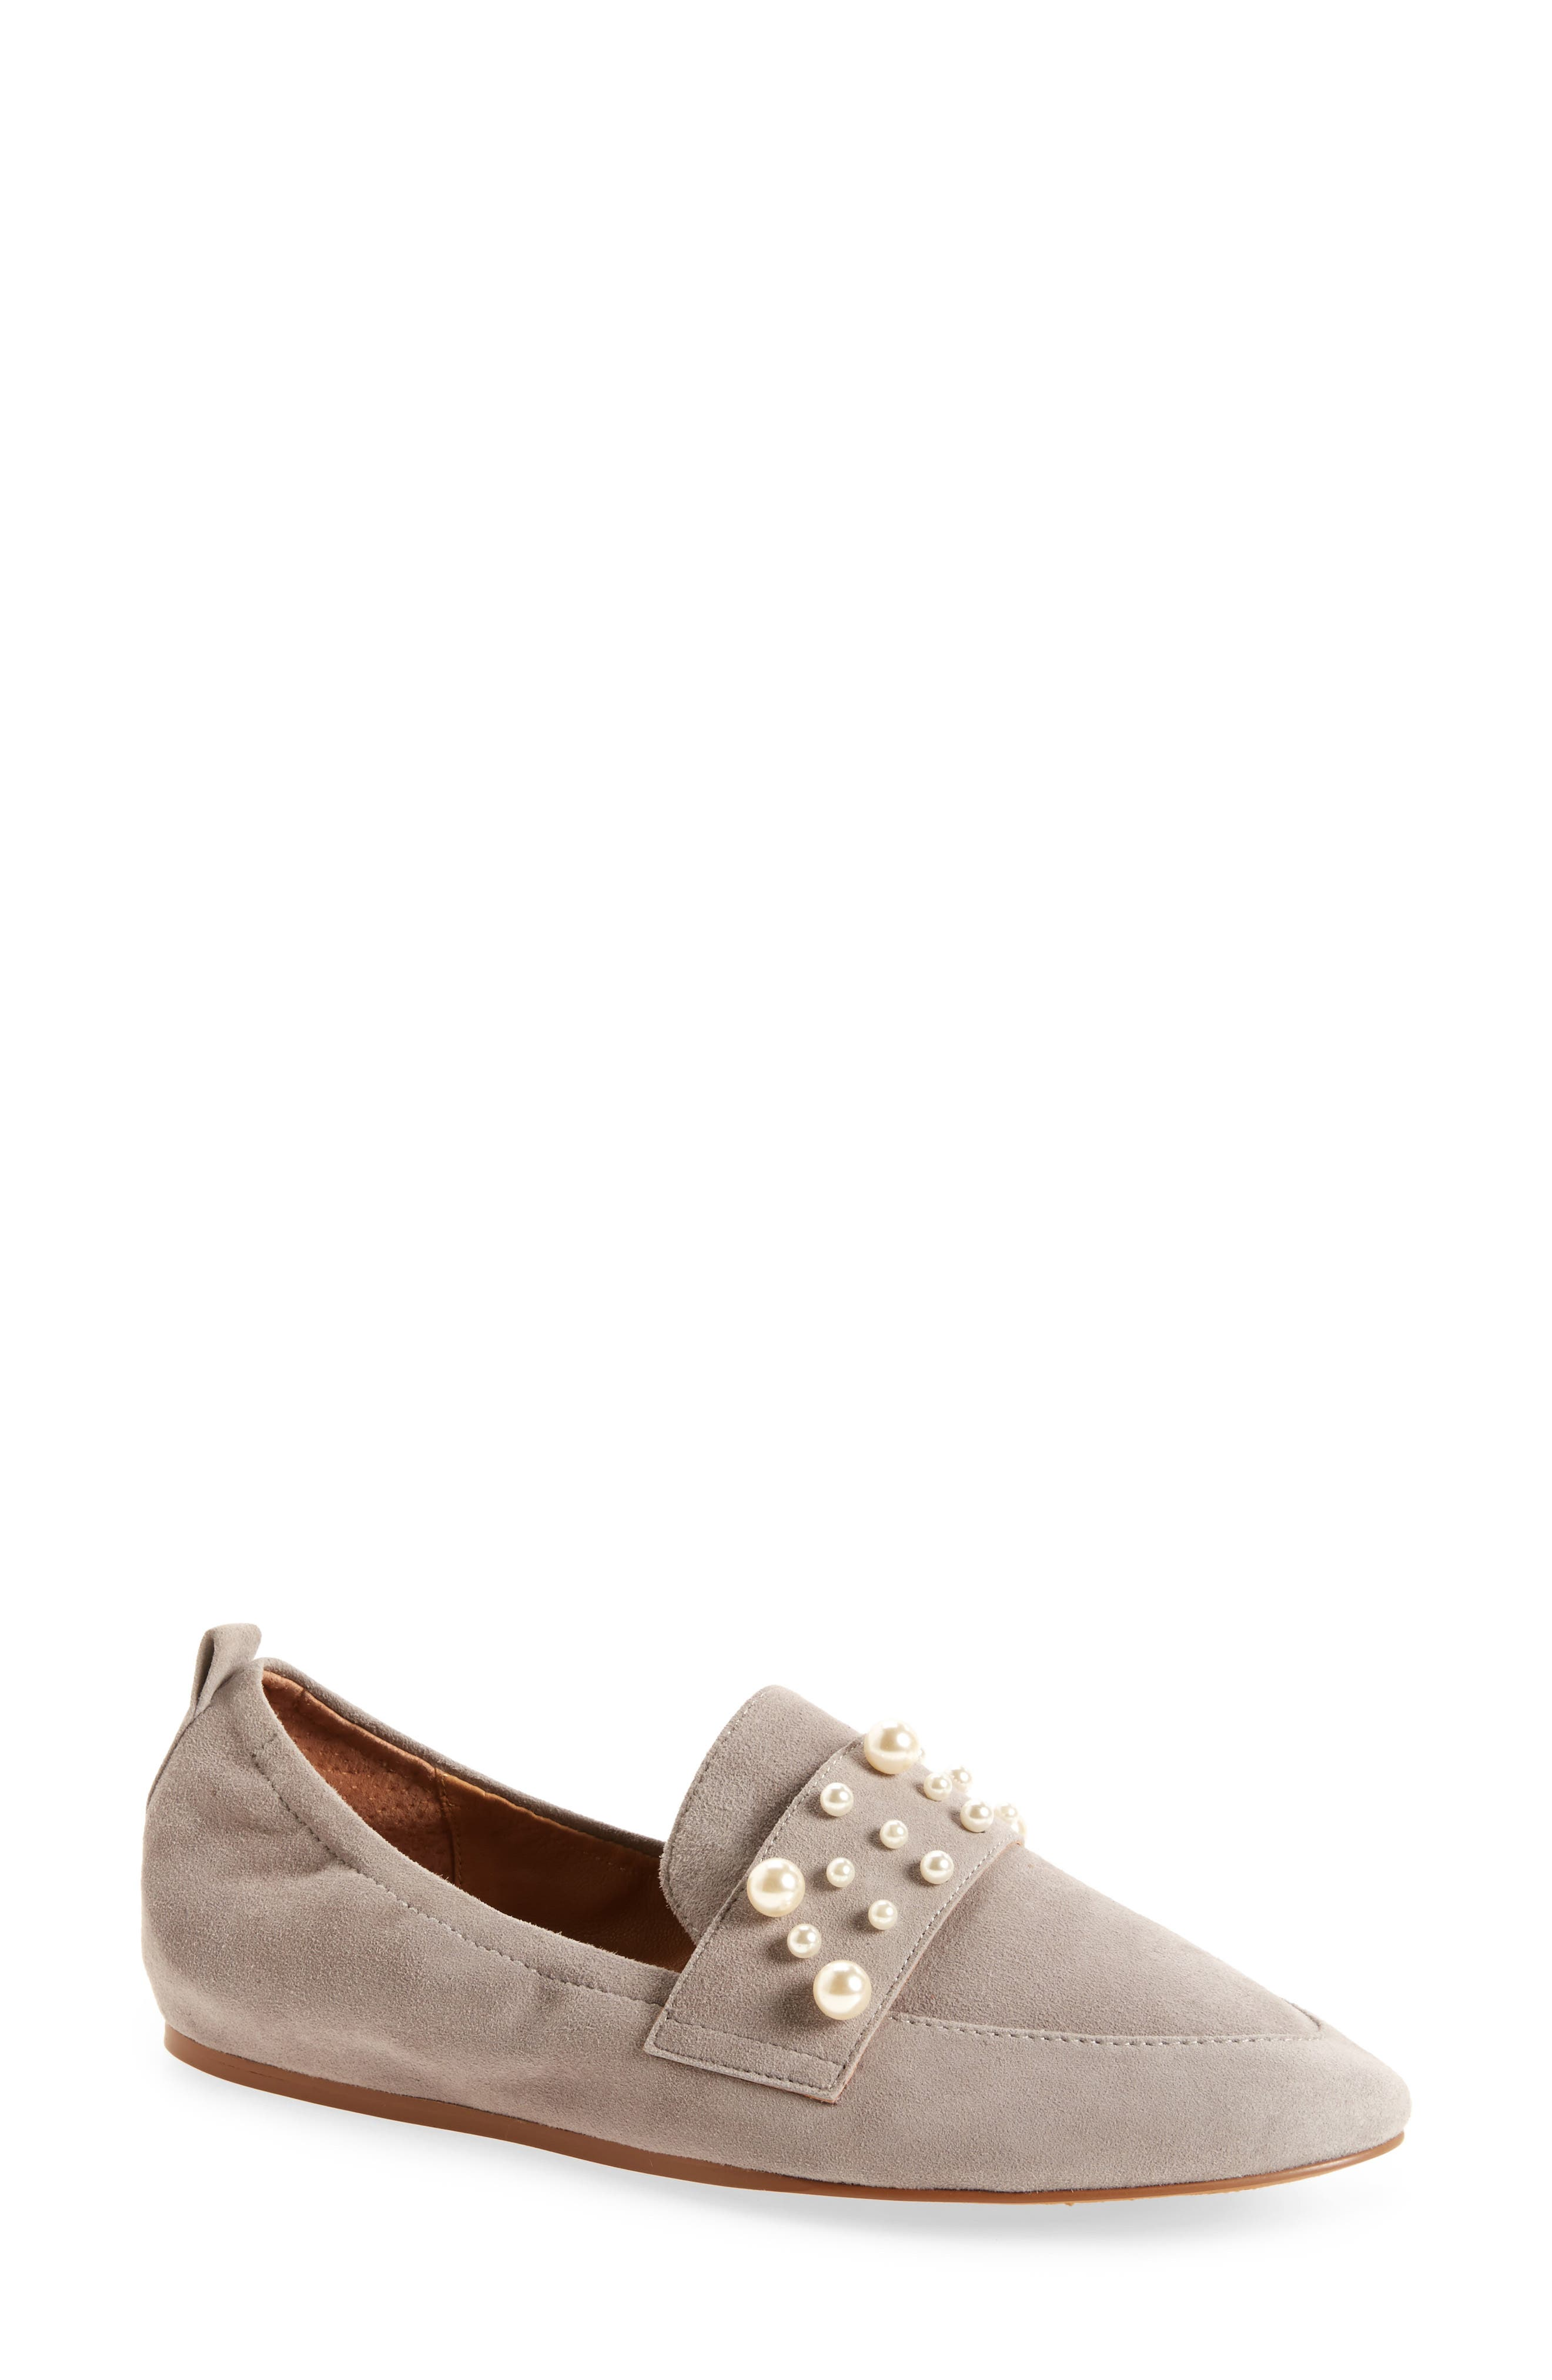 Linea Paolo Milly Loafer (Women)